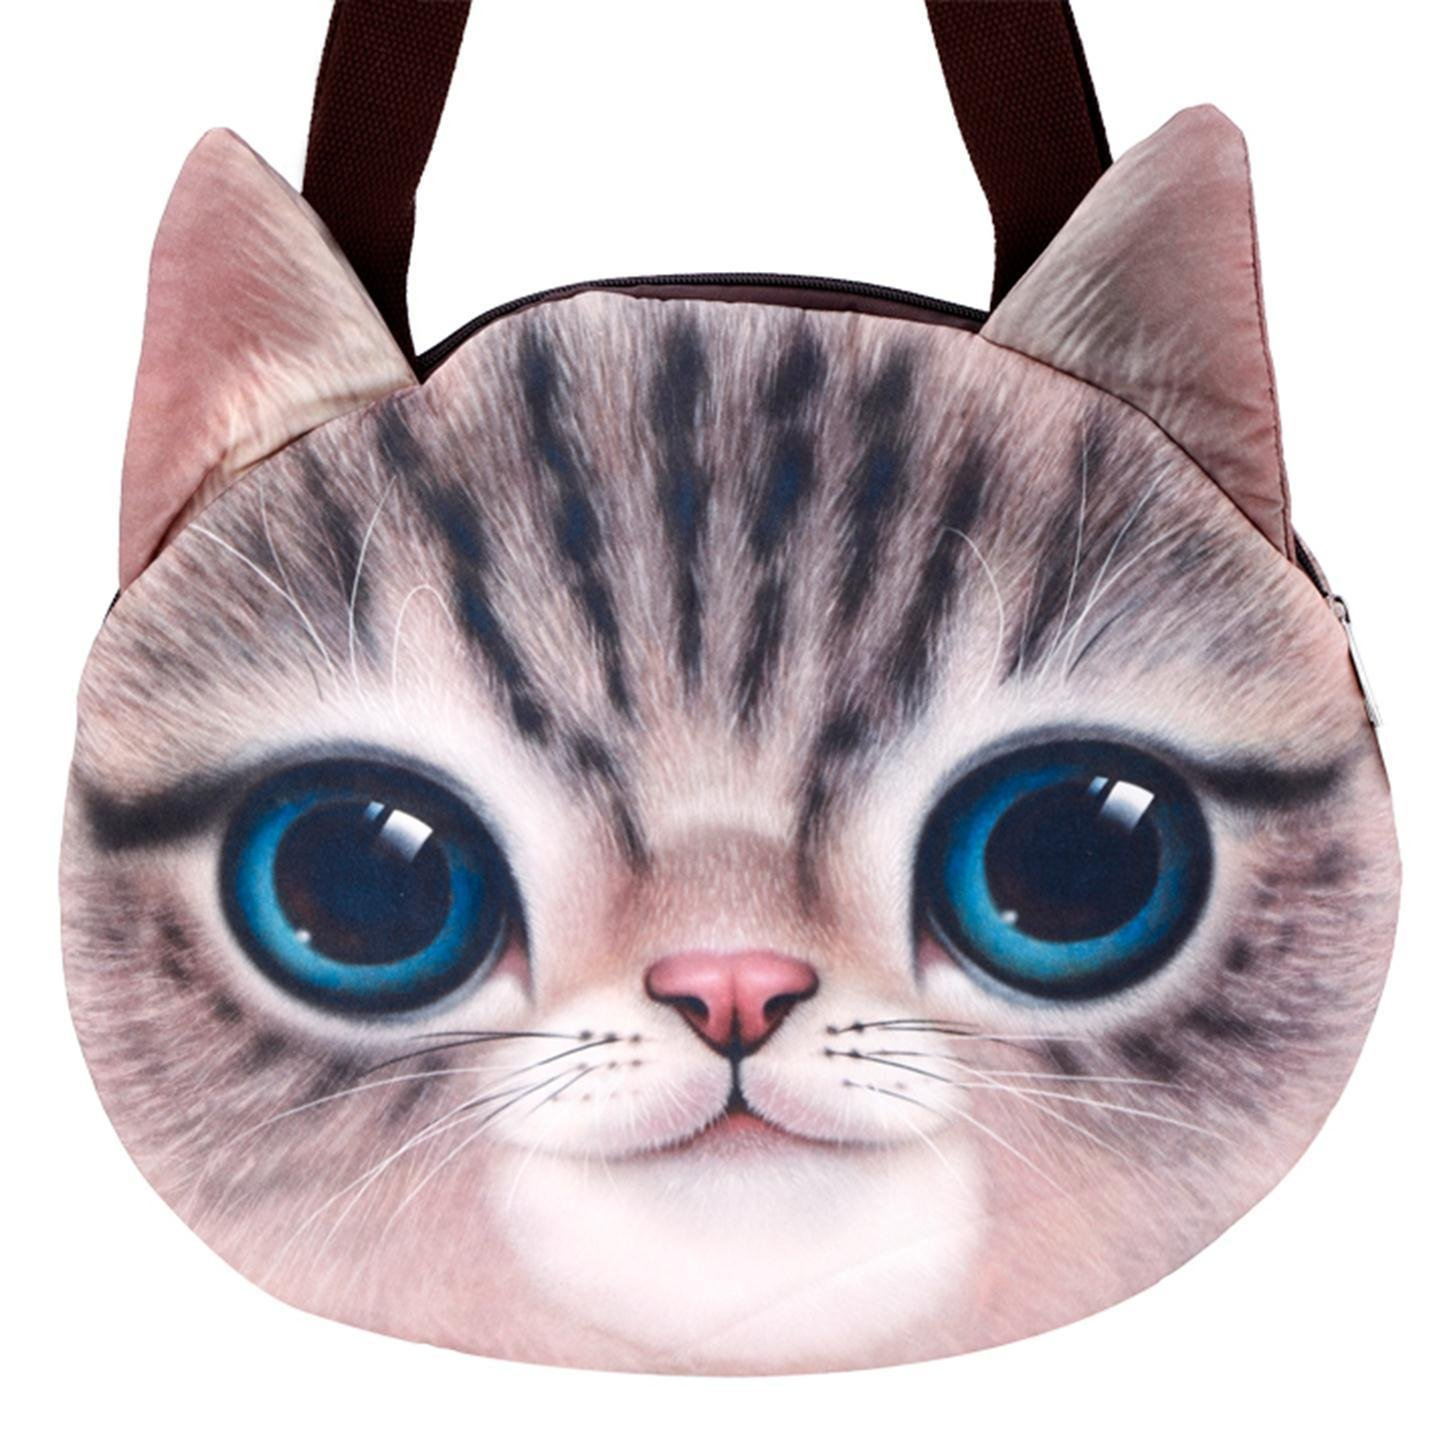 IEnkidu Handbags for Women, Cute 3D Cat Head Travel Single Shoulder Straps Crossbody Messenger Handbag Zipper Tote Bag Large at Amazon Womens Clothing ...